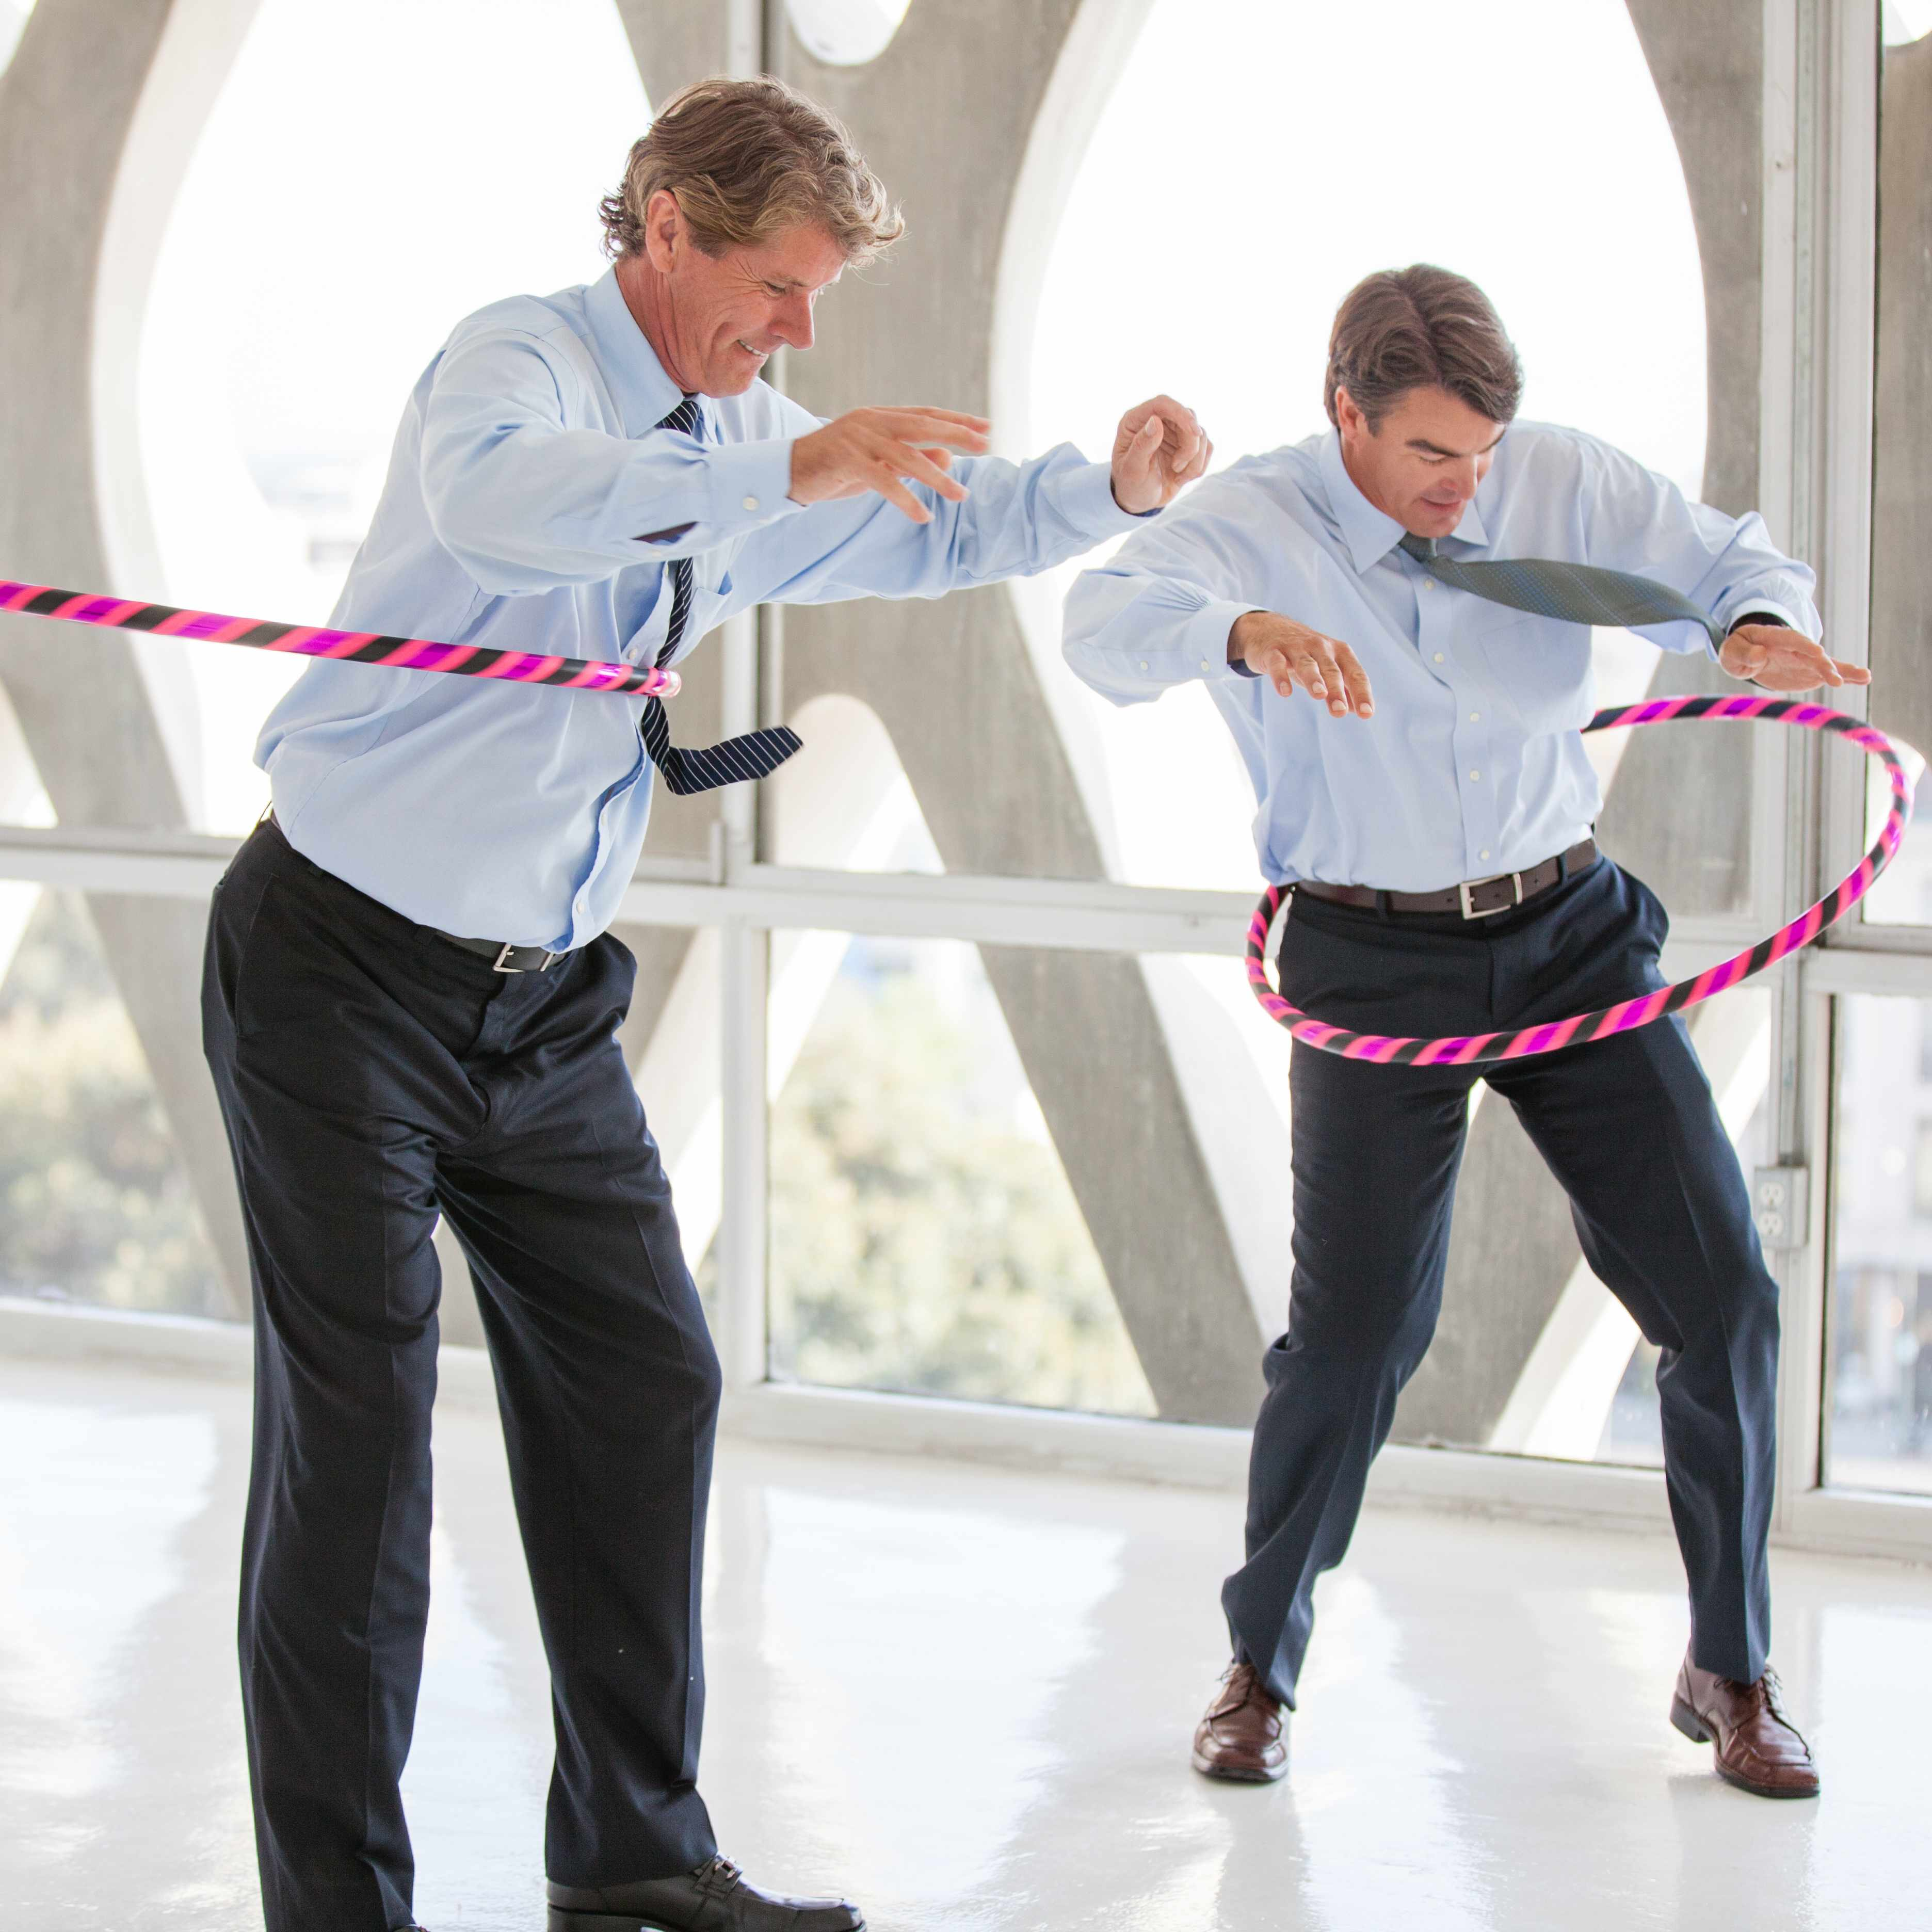 two men in suit pants, dress shirts and ties hula hooping